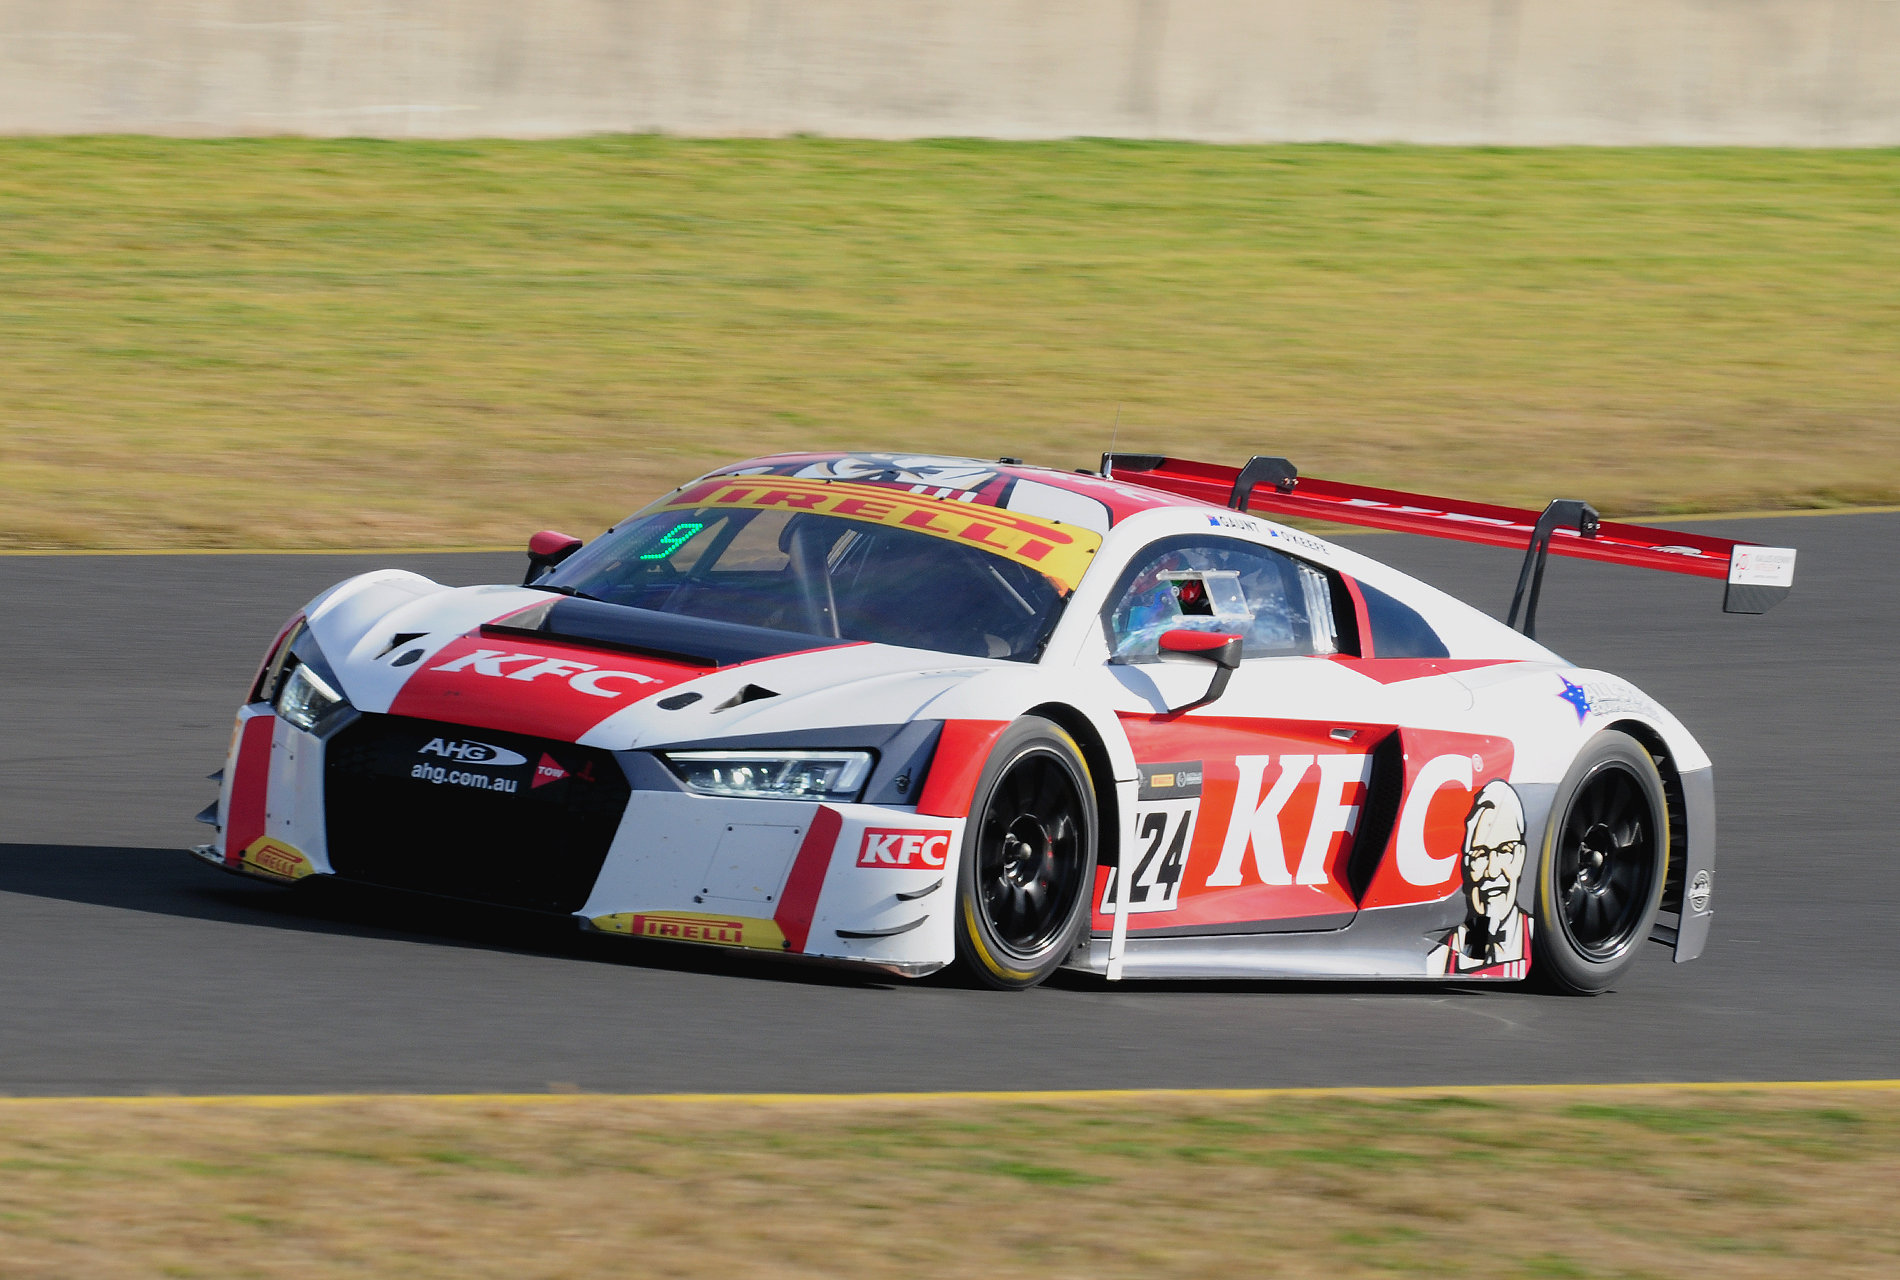 Okeeffe receives call up to kfc audi r8 lms endurance info young gun dylan okeeffe will make his australian endurance championship debut aboard the kfc audi r8 lms at sydney motorsport park next weekend august 18 publicscrutiny Images